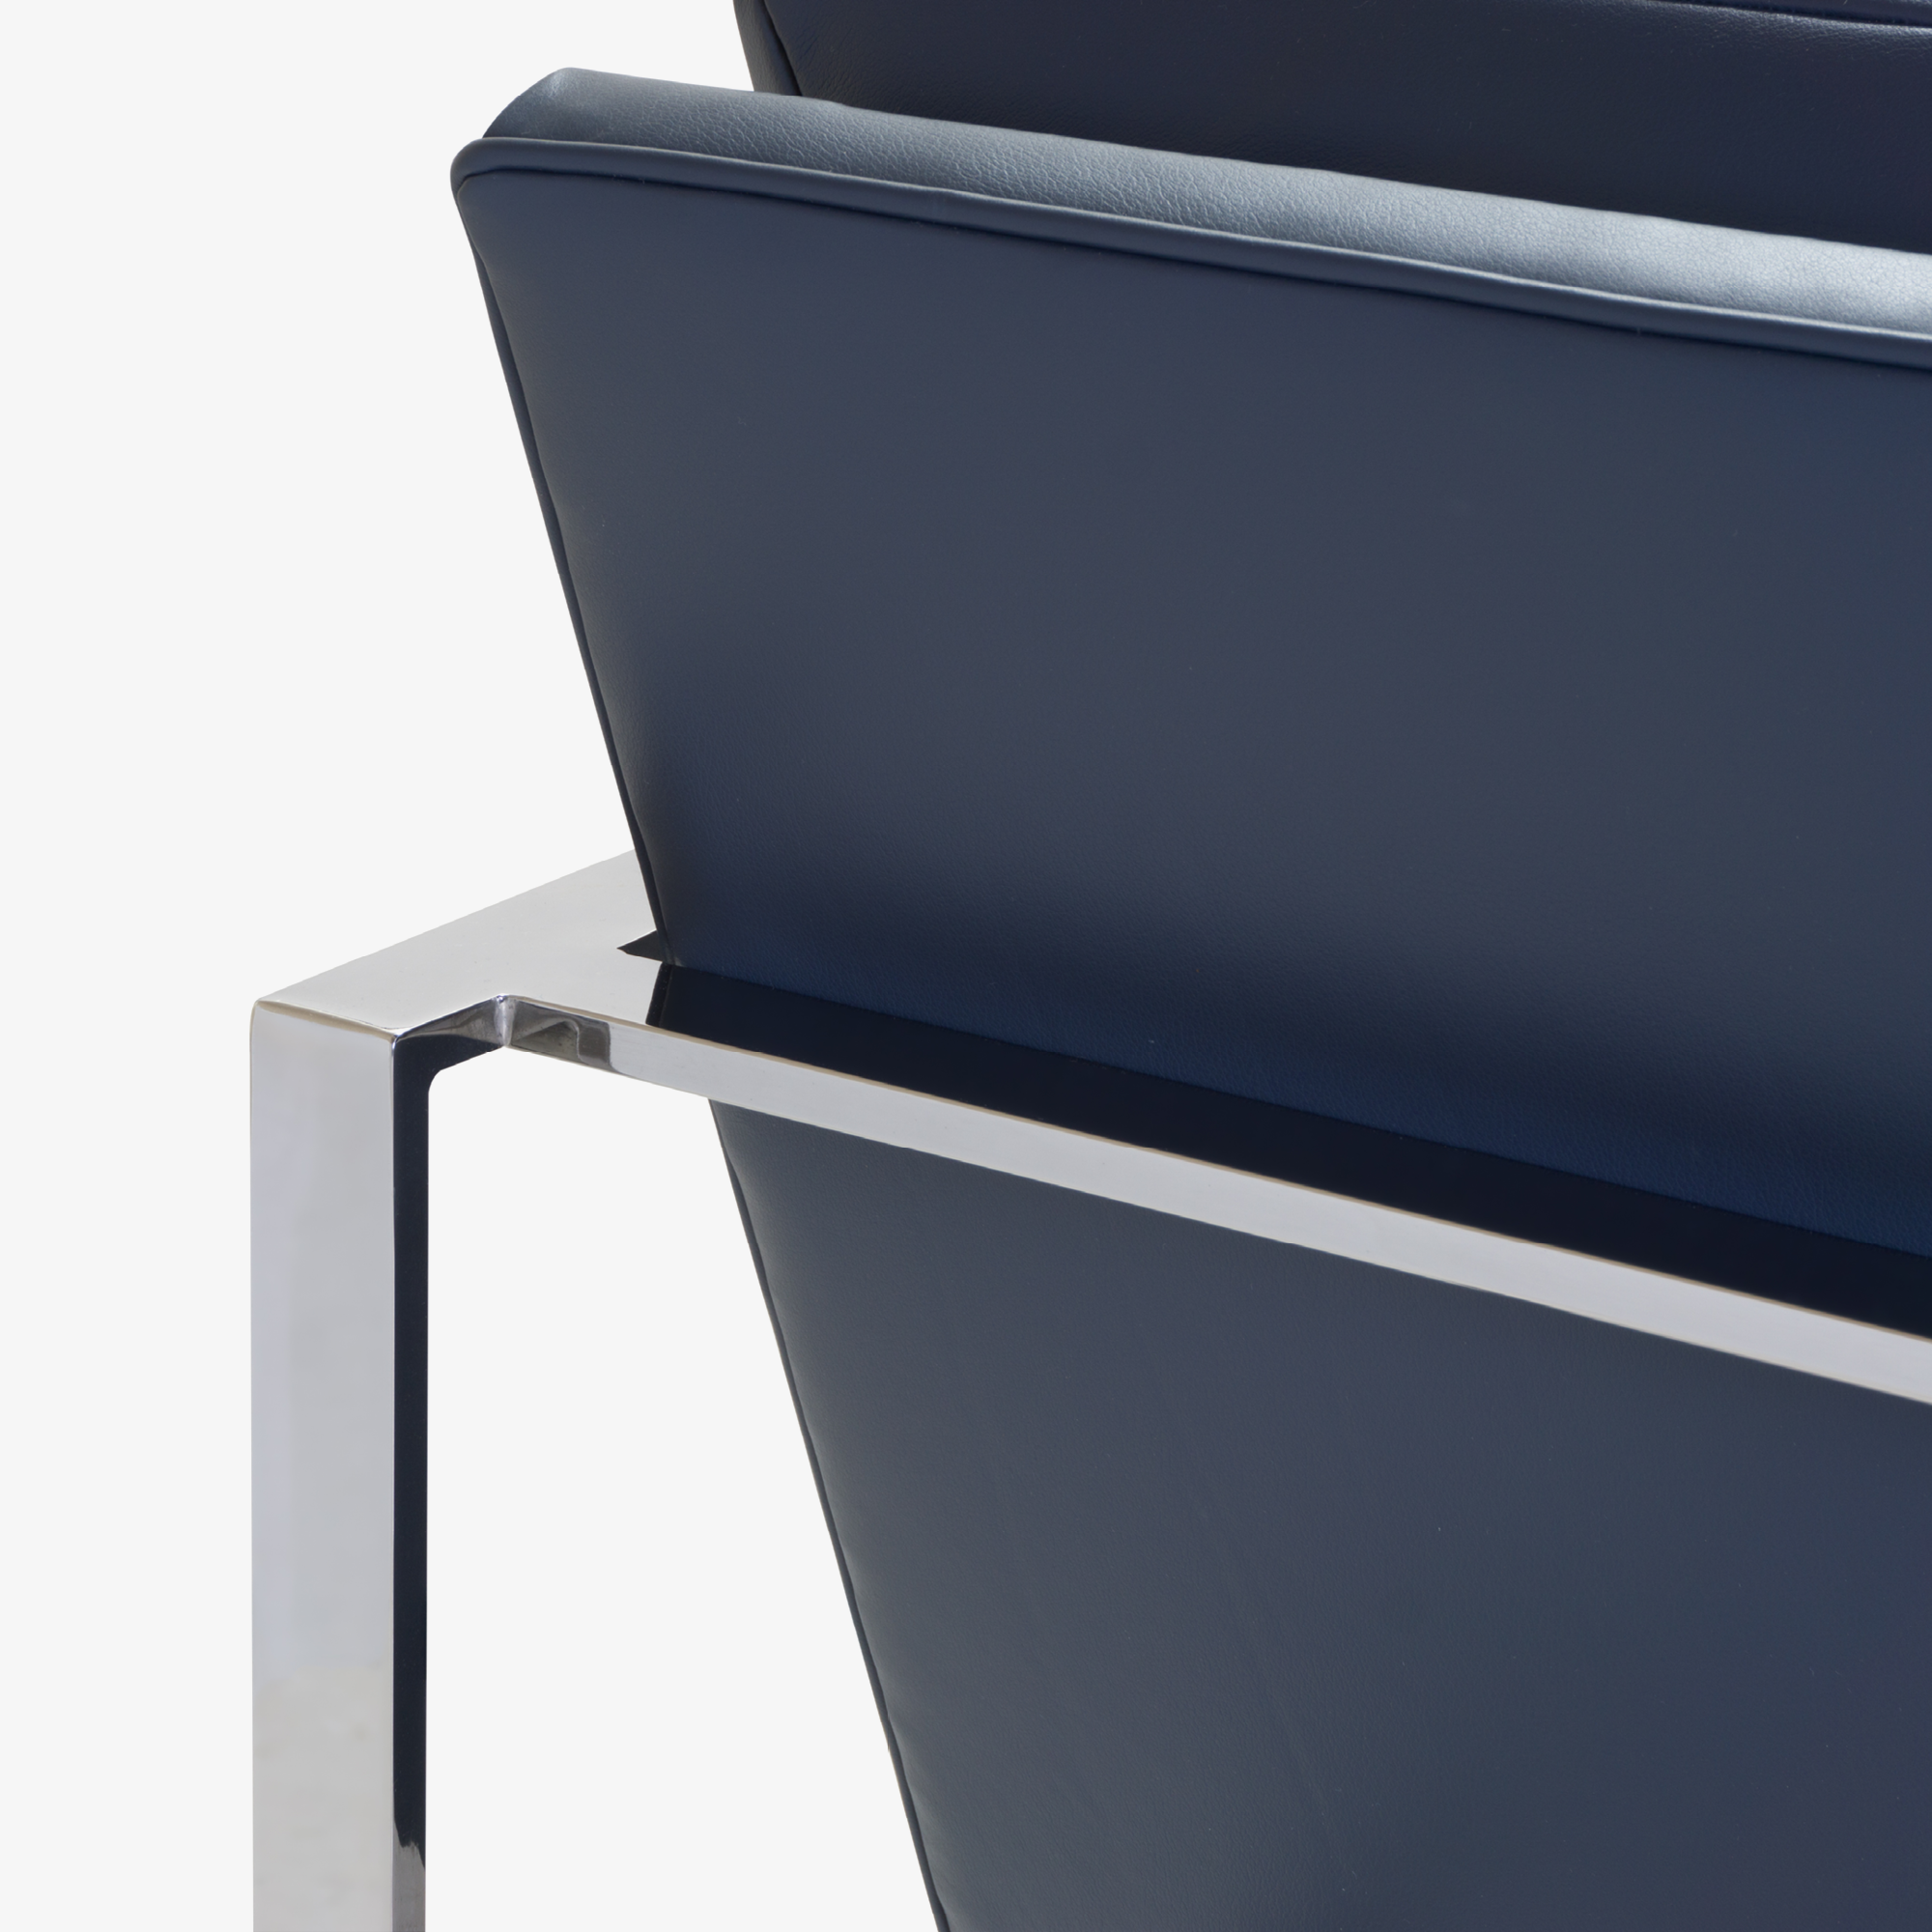 Flat-Bar Club Chairs in Navy Leather by Milo Baughman for Thayer Coggin5.png